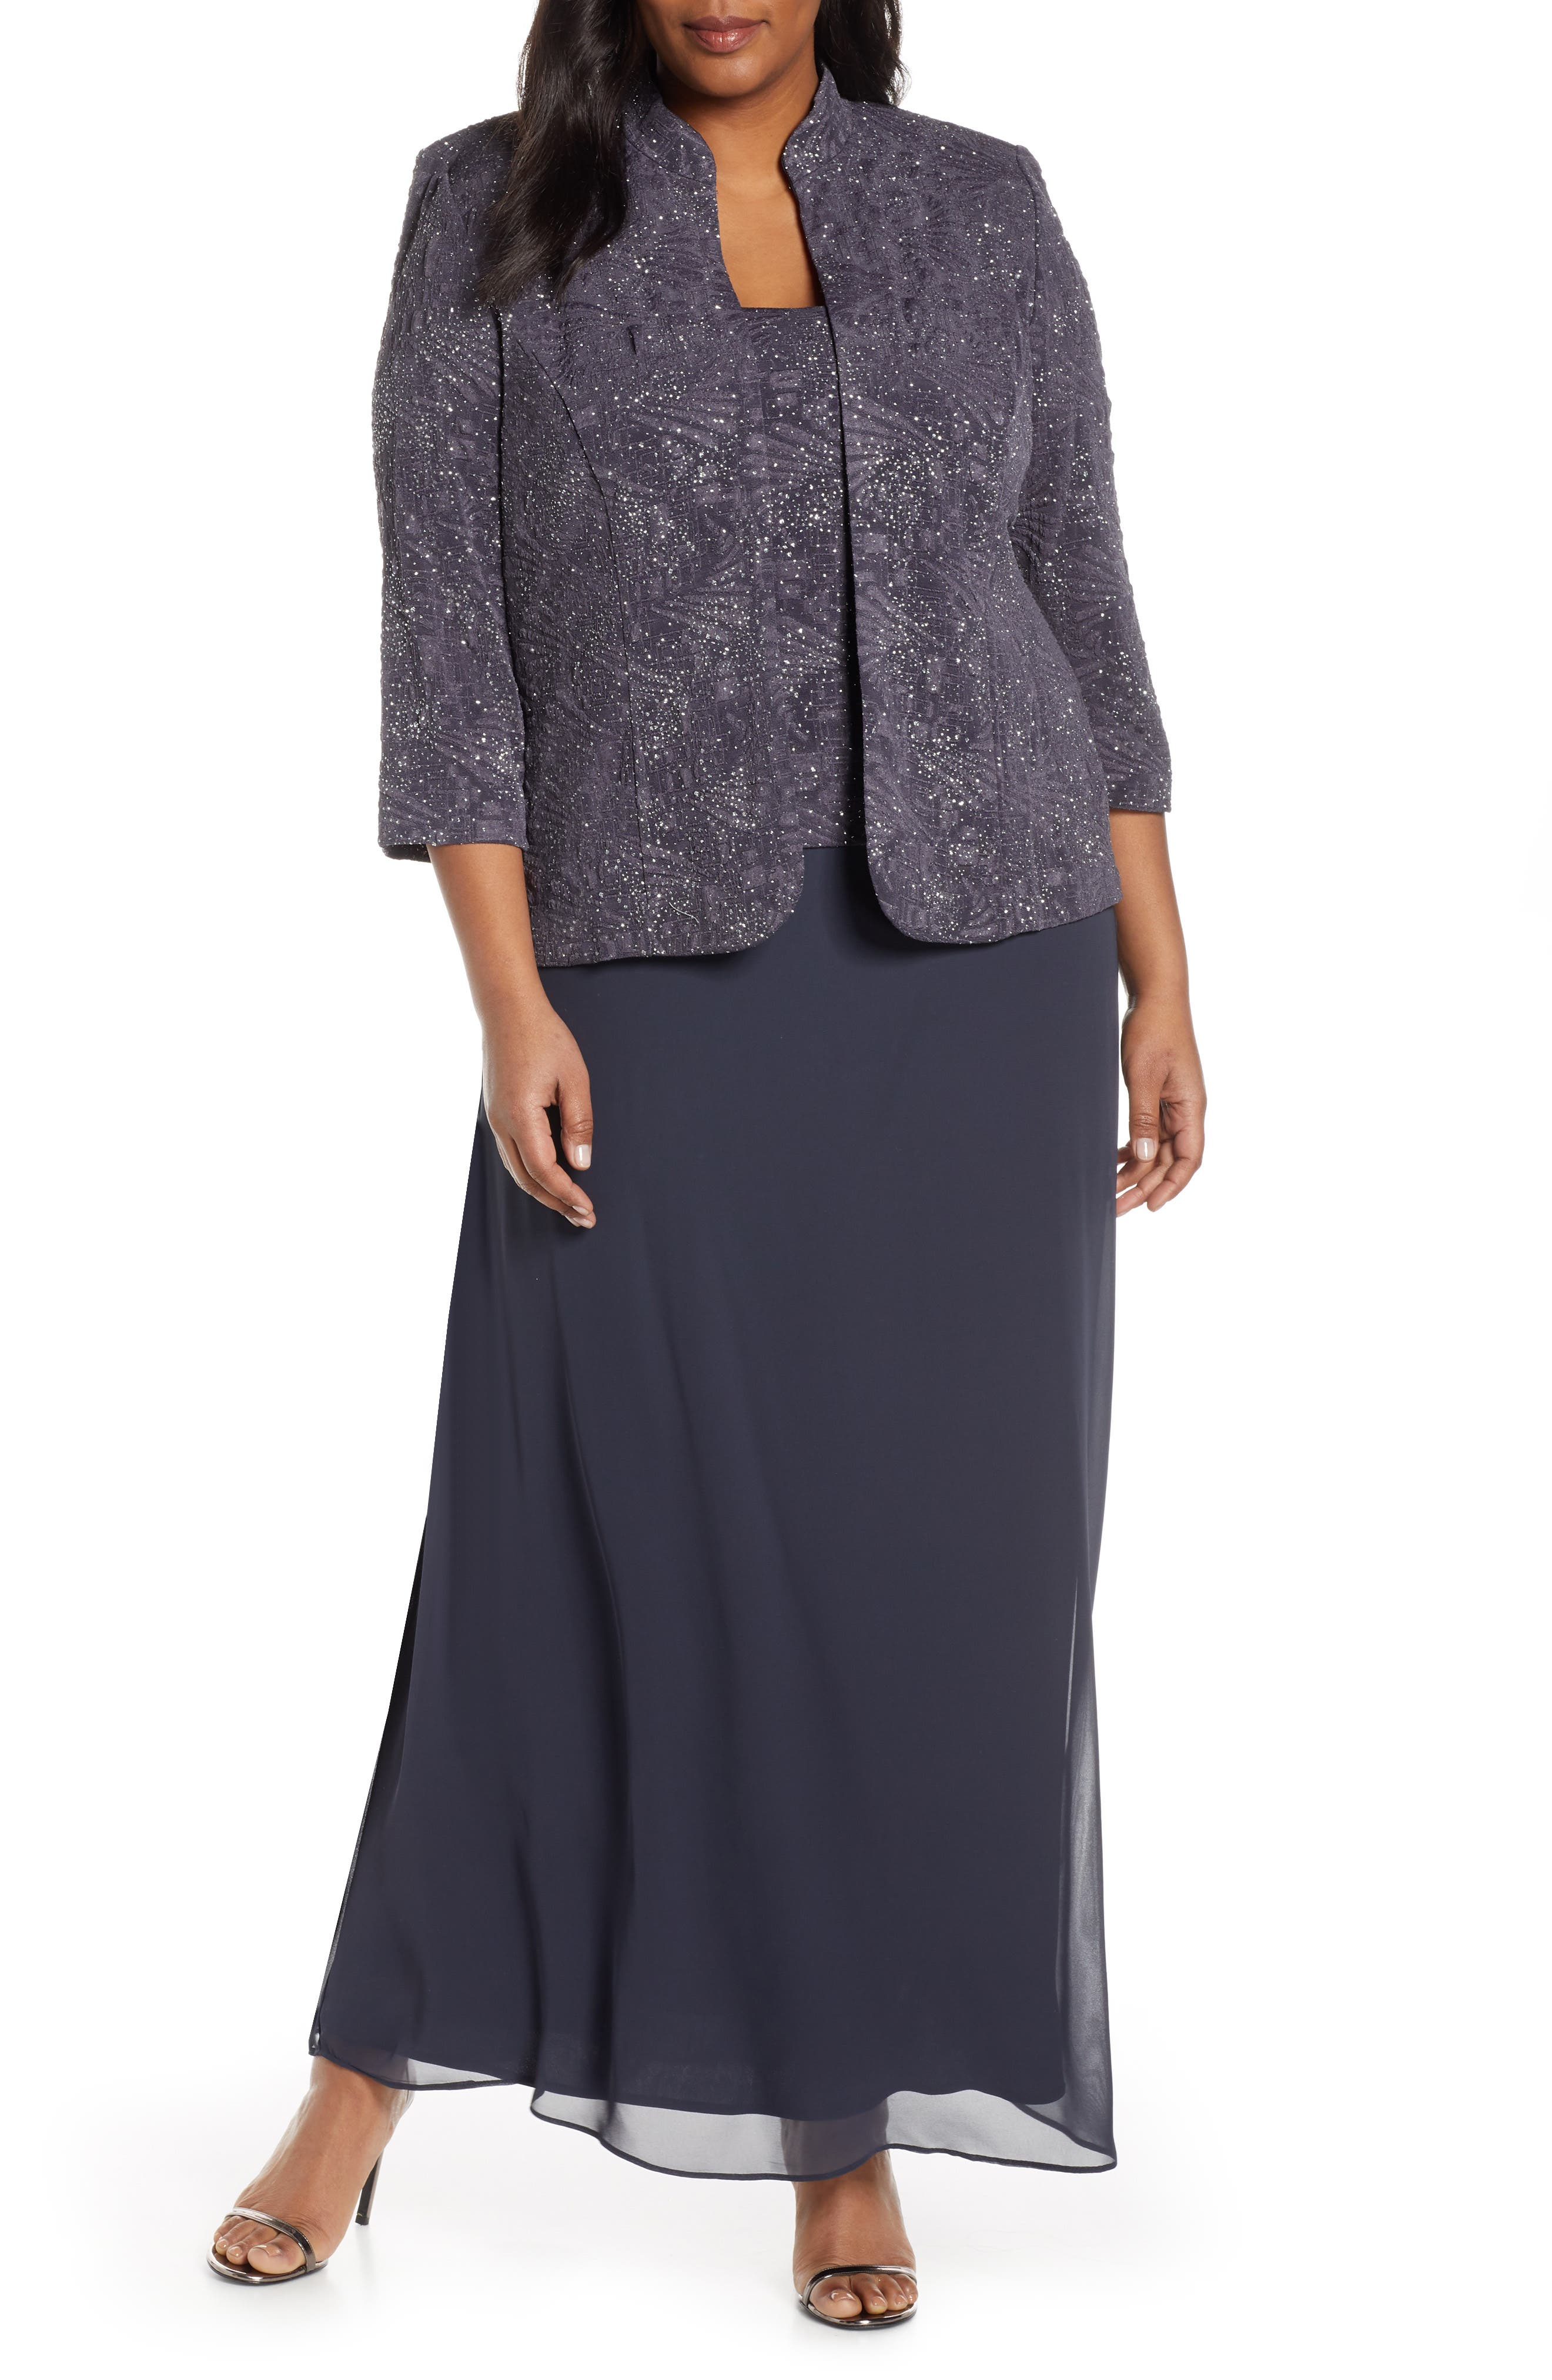 Plus Size Alex Evenings Lace & Chiffon Gown With Jacket, Grey